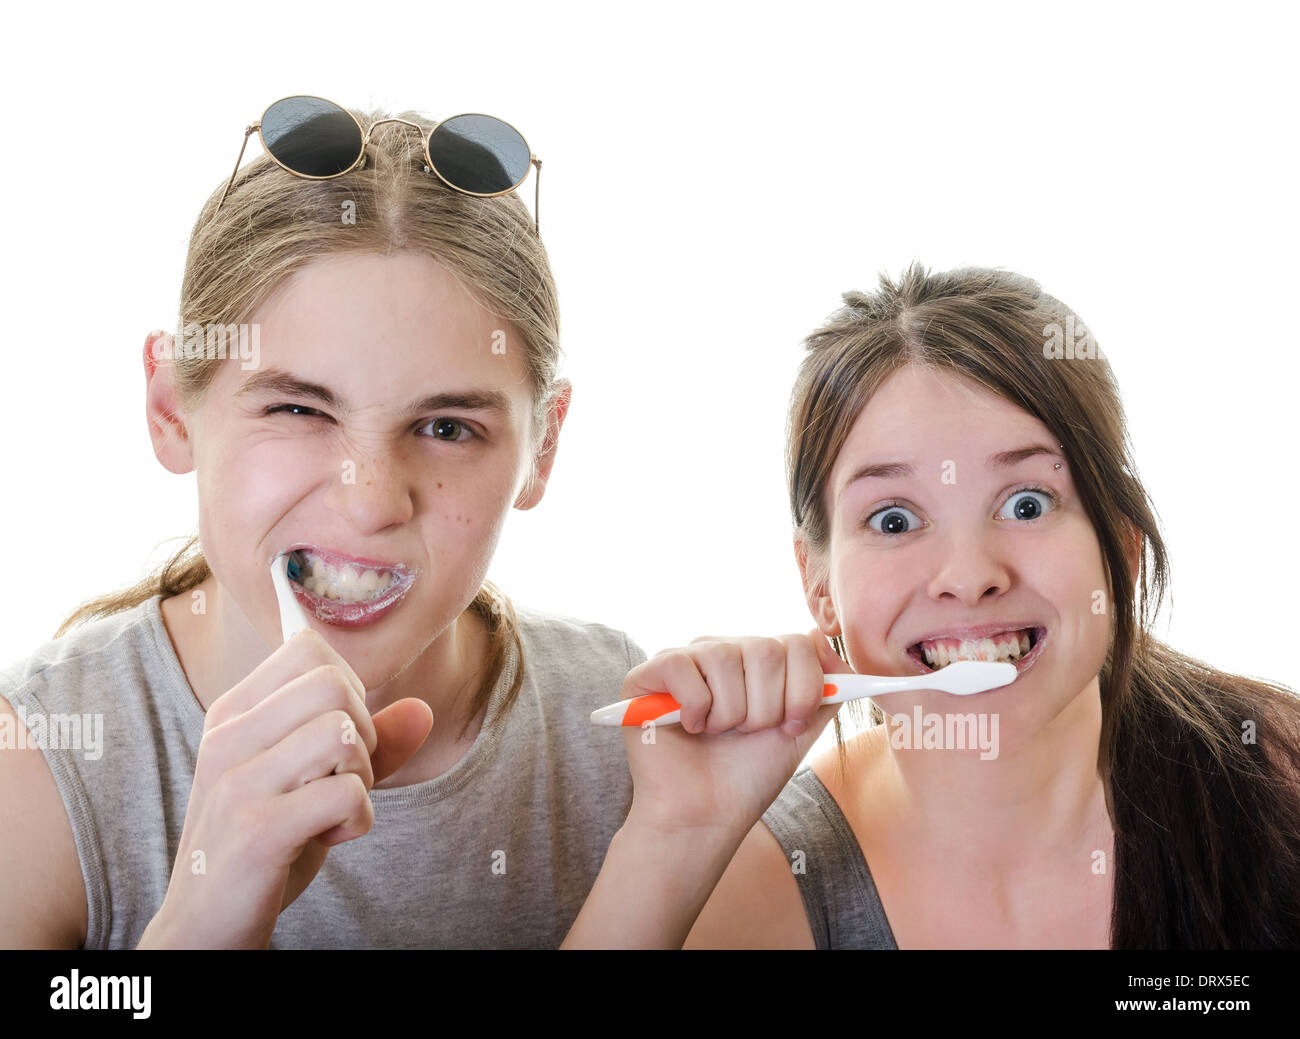 Young Couple Grimacing while Brushing their Teeth in front of camera, Horizontal Shot over White - Stock Image